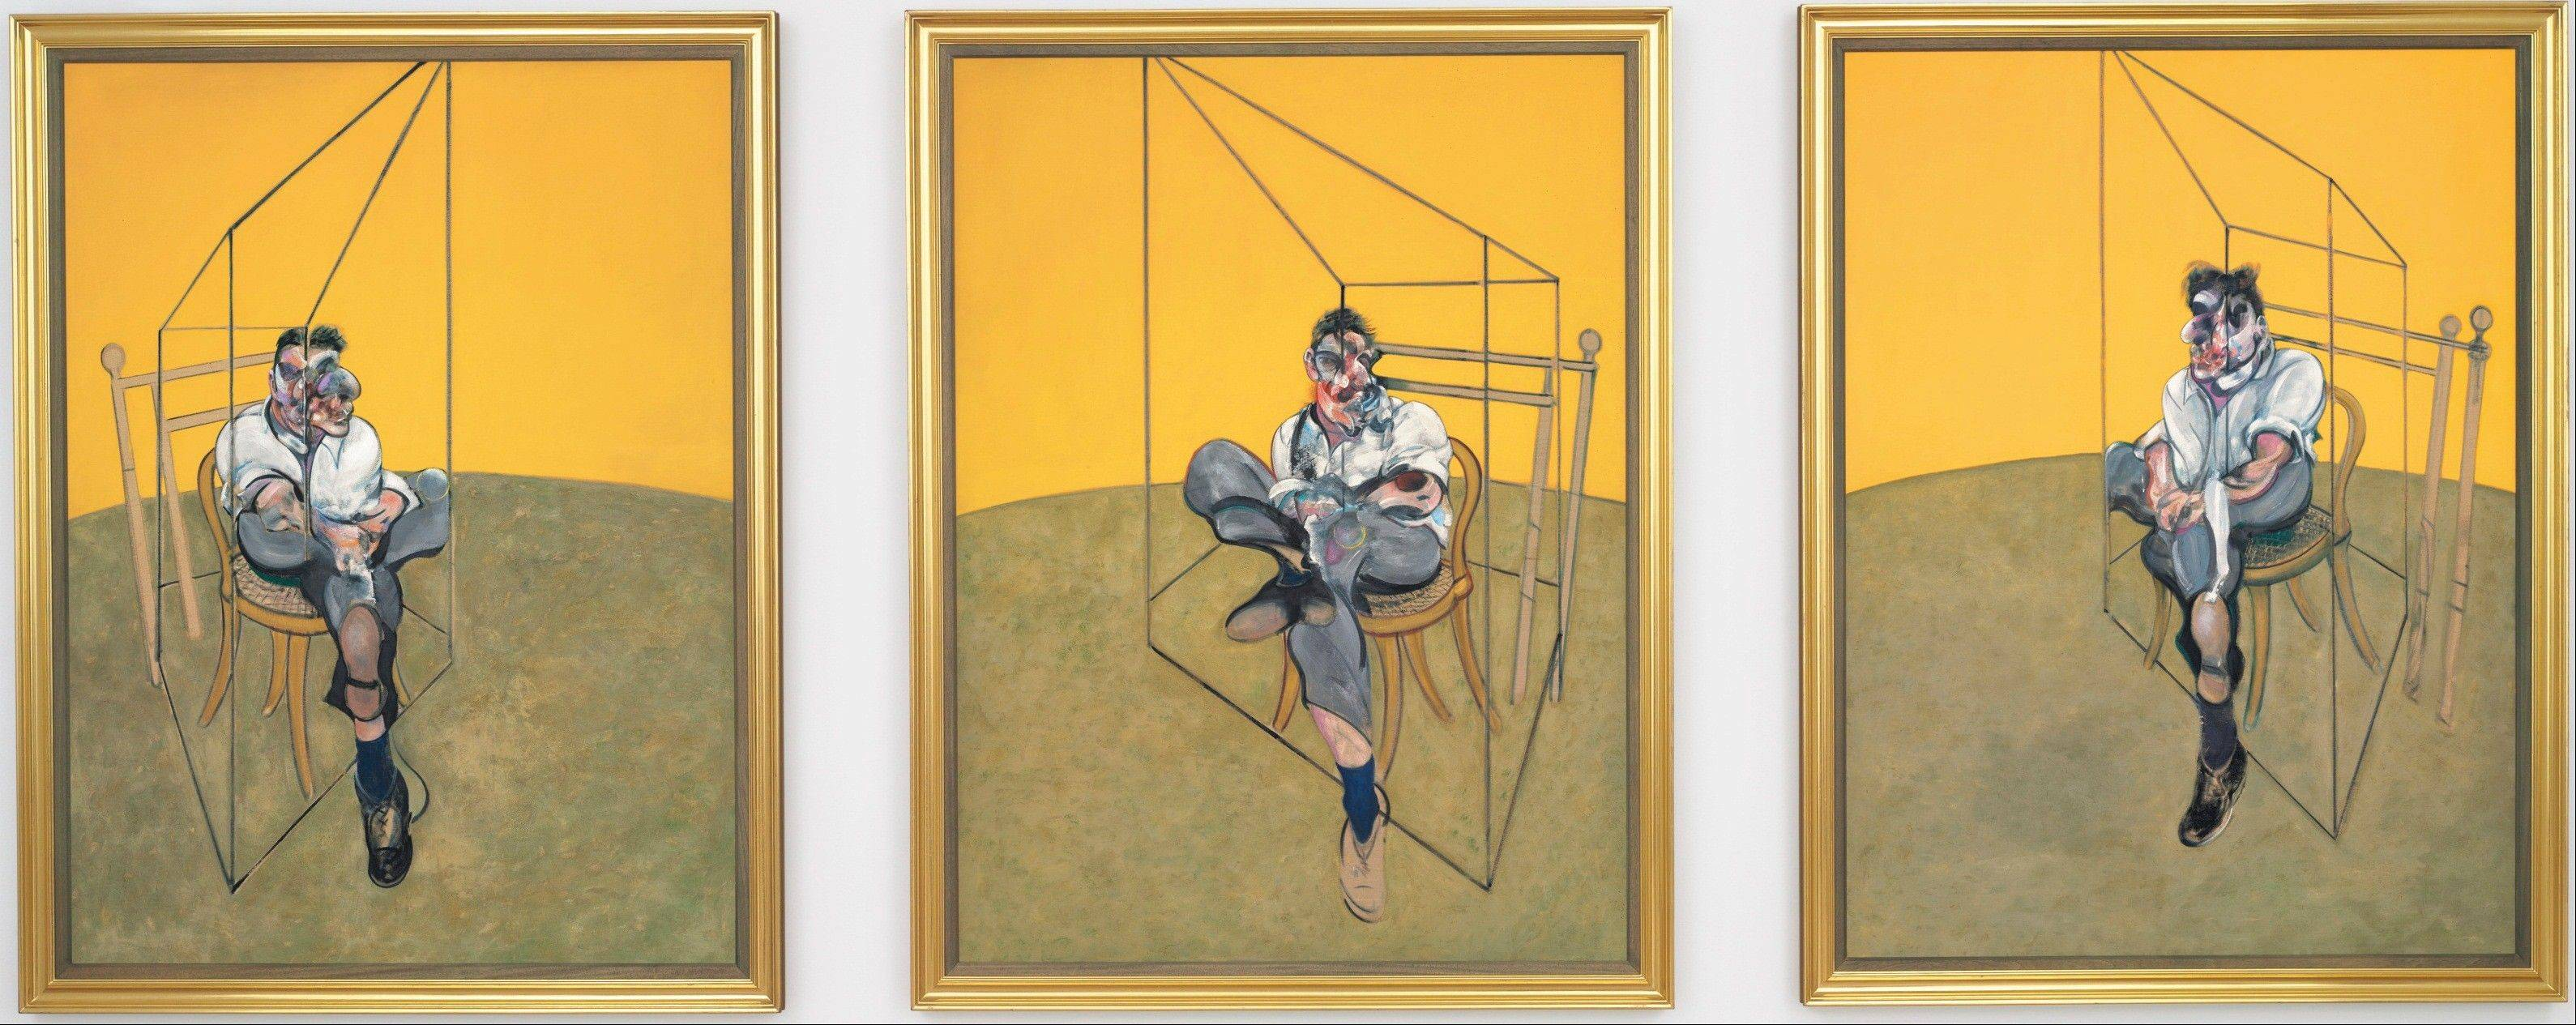 """Three Studies of Lucian Freud,"" a triptych by Francis Bacon of his friend and artist Lucian Freud, sold for the most money ever paid for an auctioned painting."